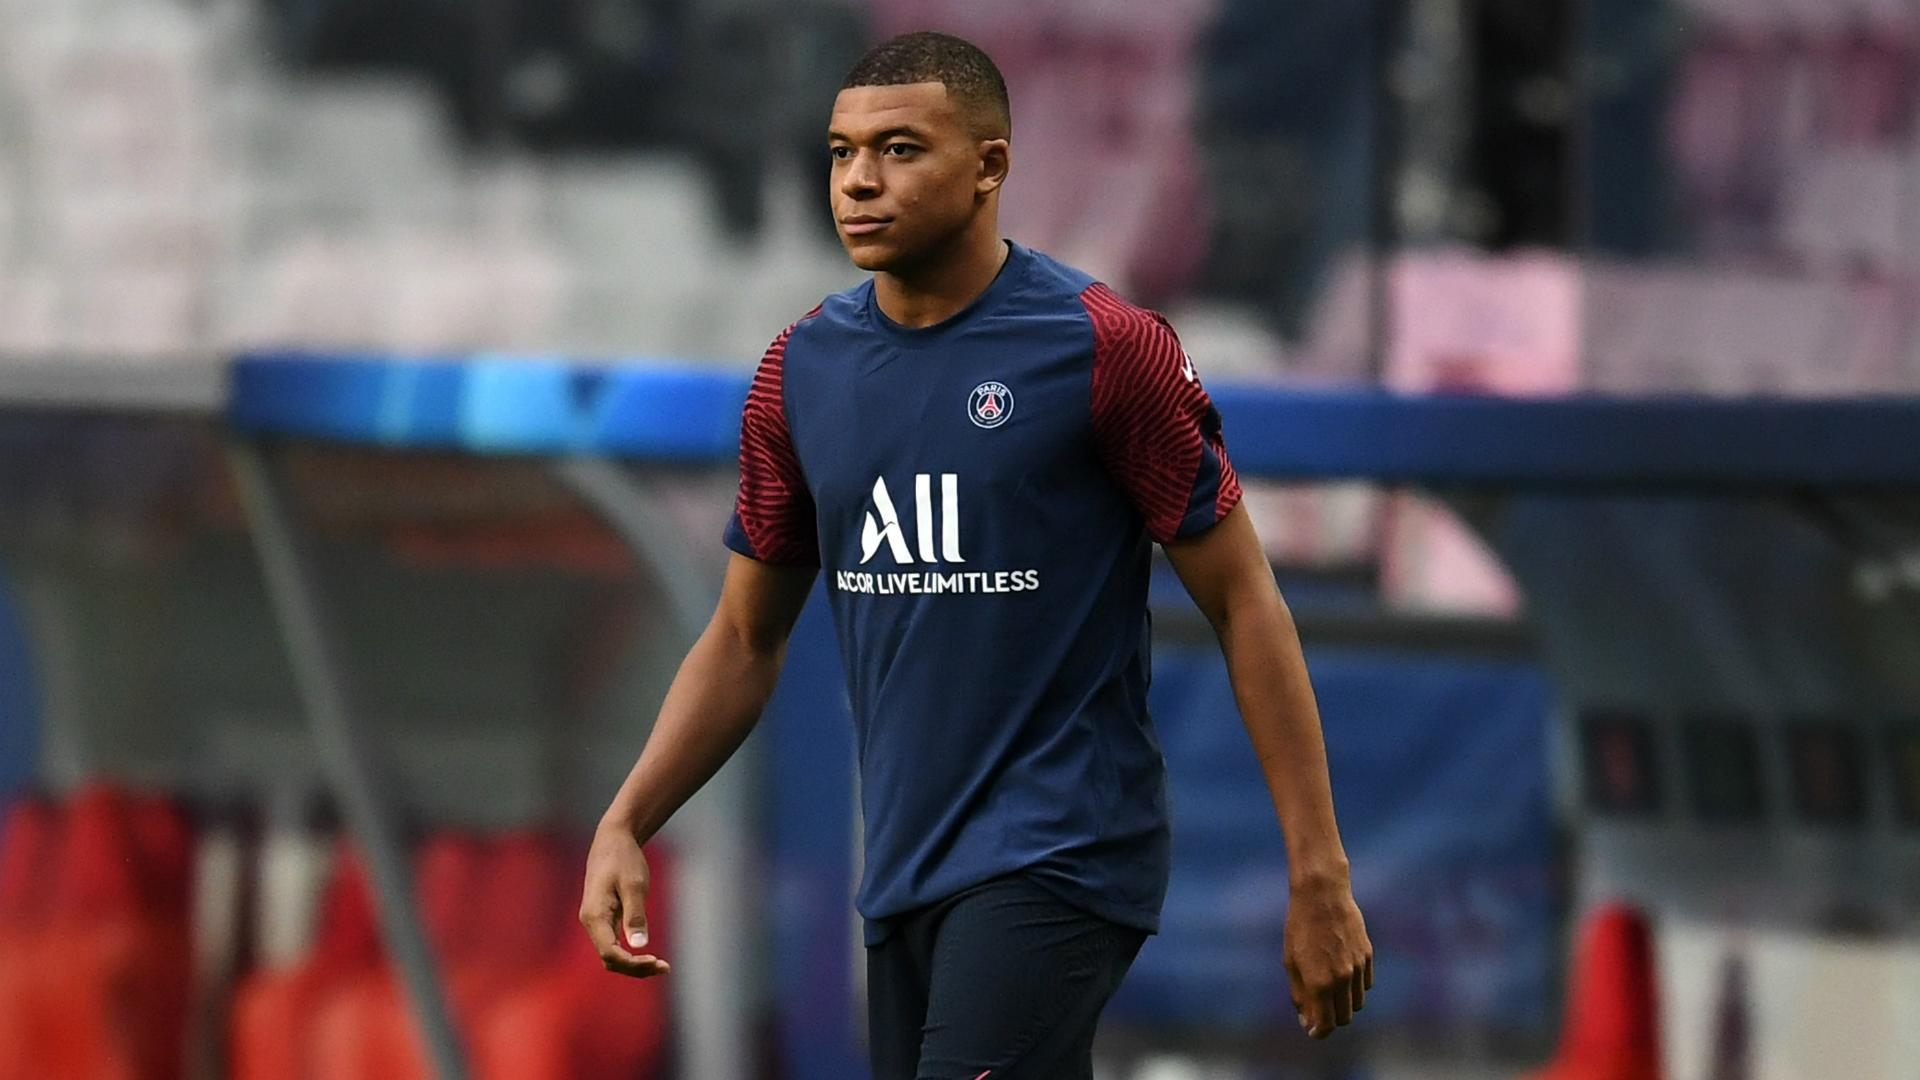 Mbappe Starts For Psg In Champions League Semi Final Against Rb Leipzig